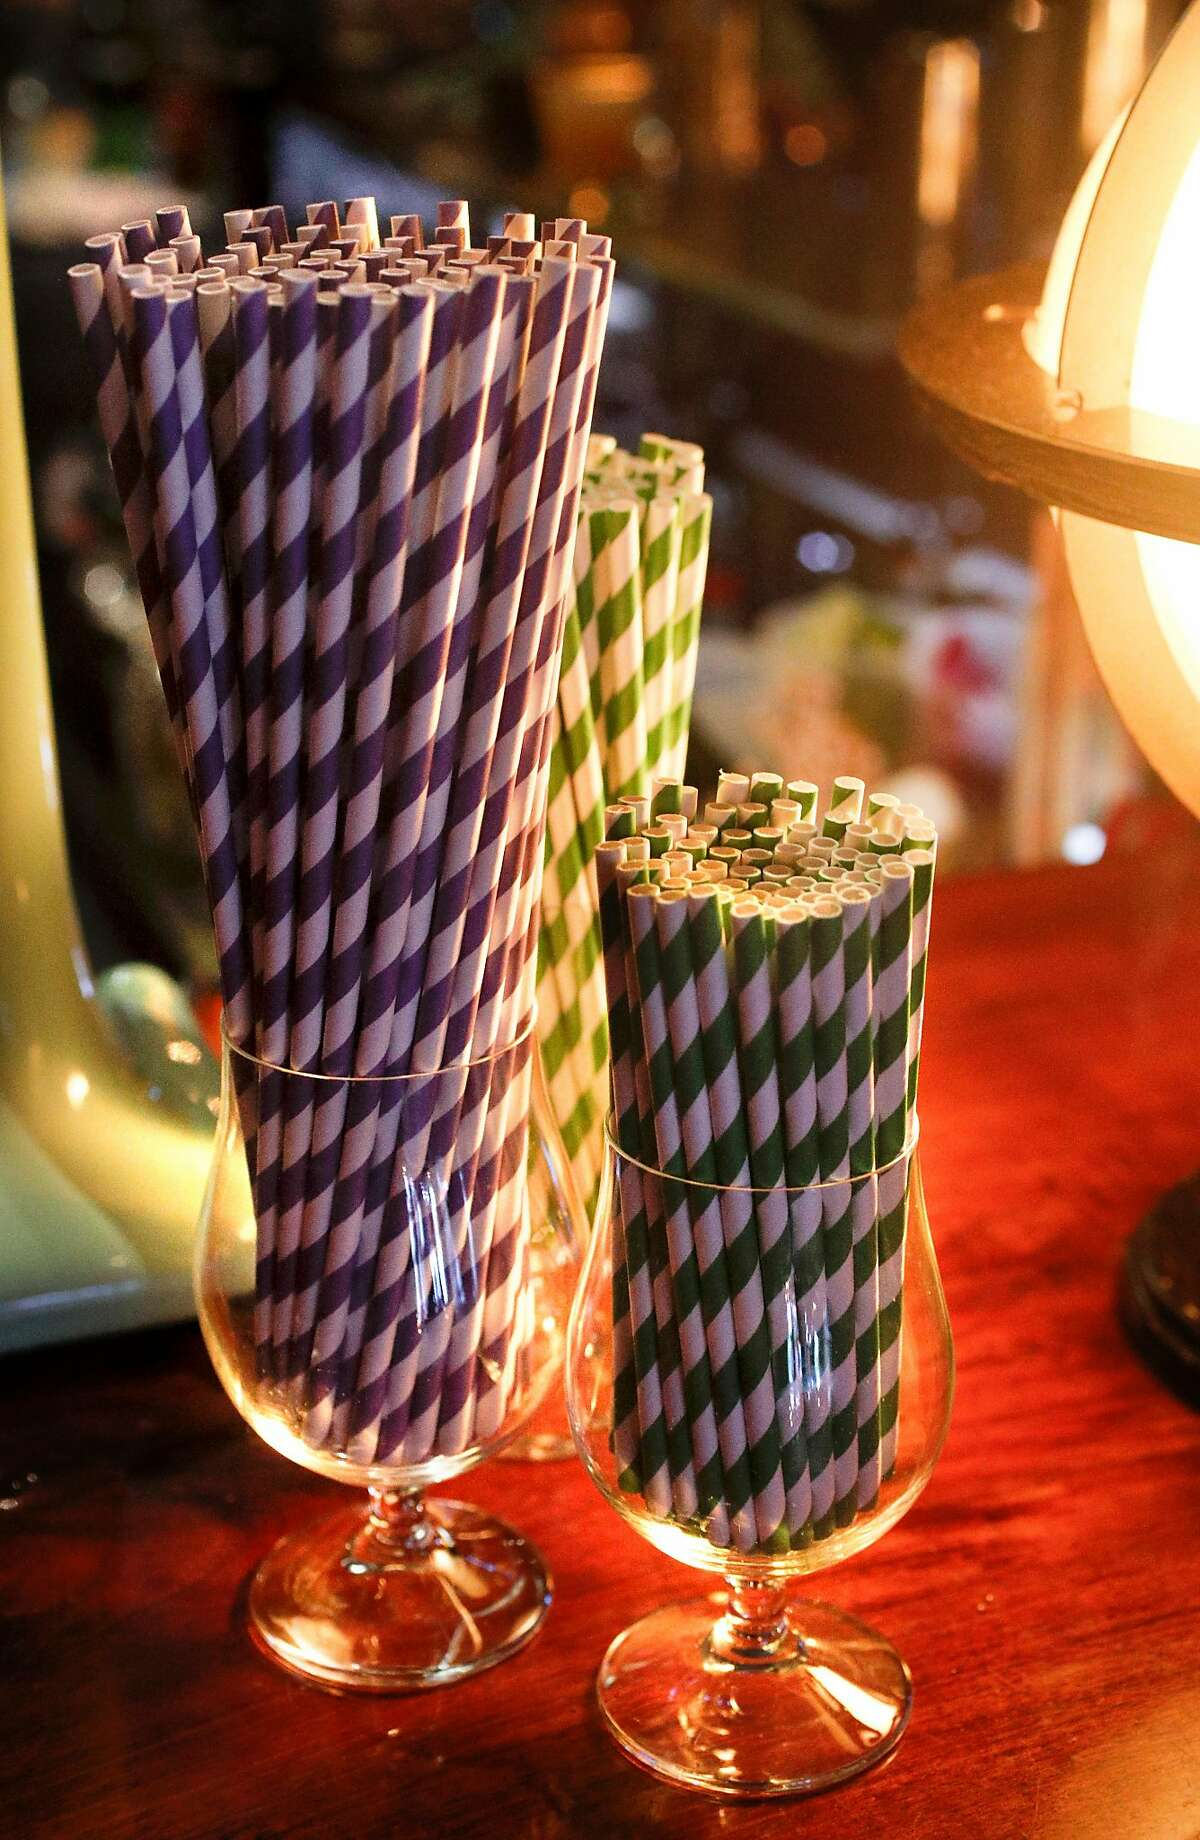 Colorful paper straws at the Pagan Idol restaurant in San Francisco, Calif. There's a movement afoot to get rid of plastic straws, including a statewide California bill and San Francisco legislation to ban plastic straws at dine-in restaurants unless a customer asks for one.